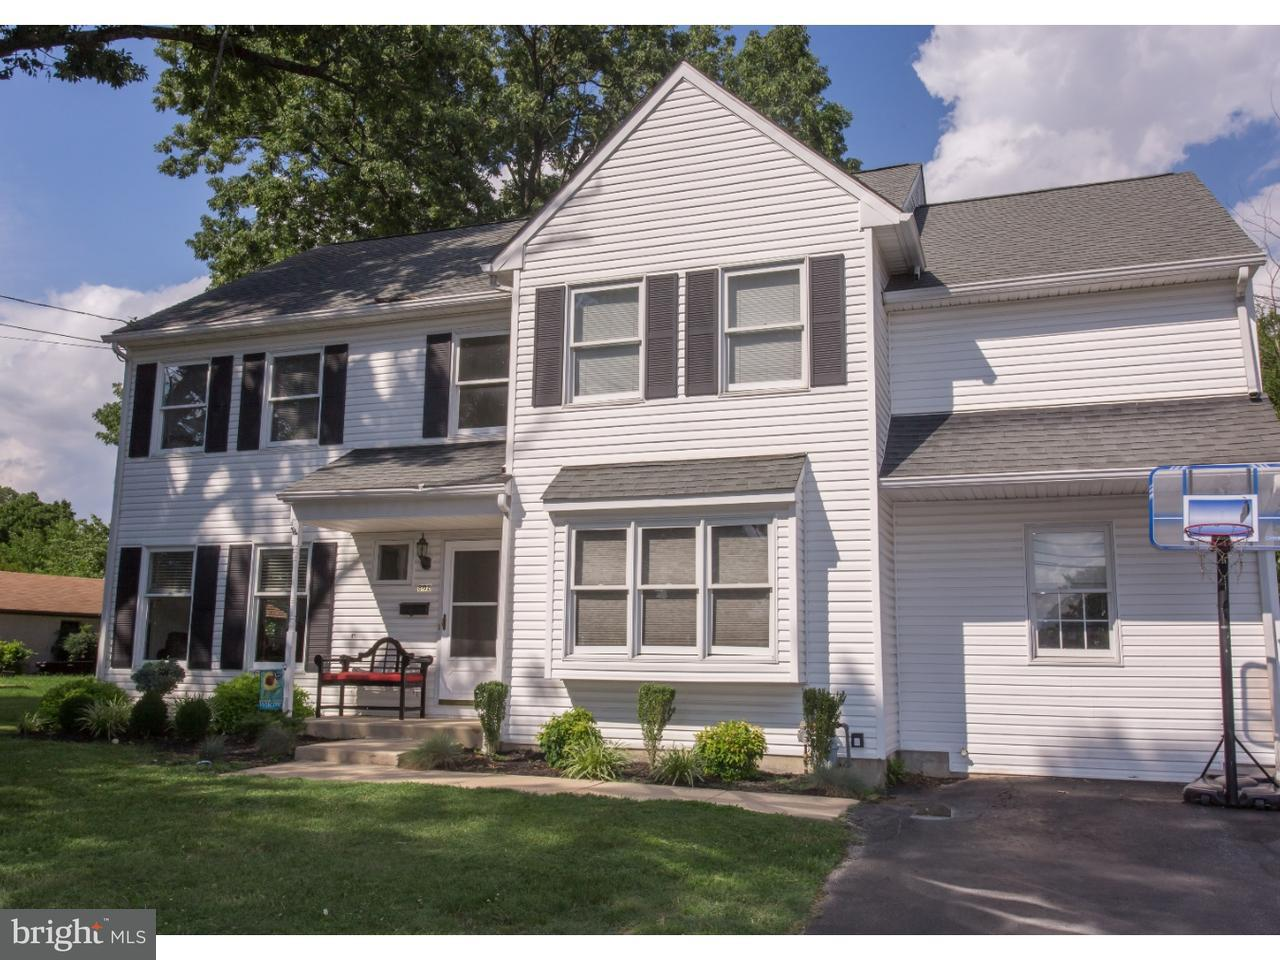 Single Family Home for Sale at 802 AMOSLAND Road Morton, Pennsylvania 19070 United States